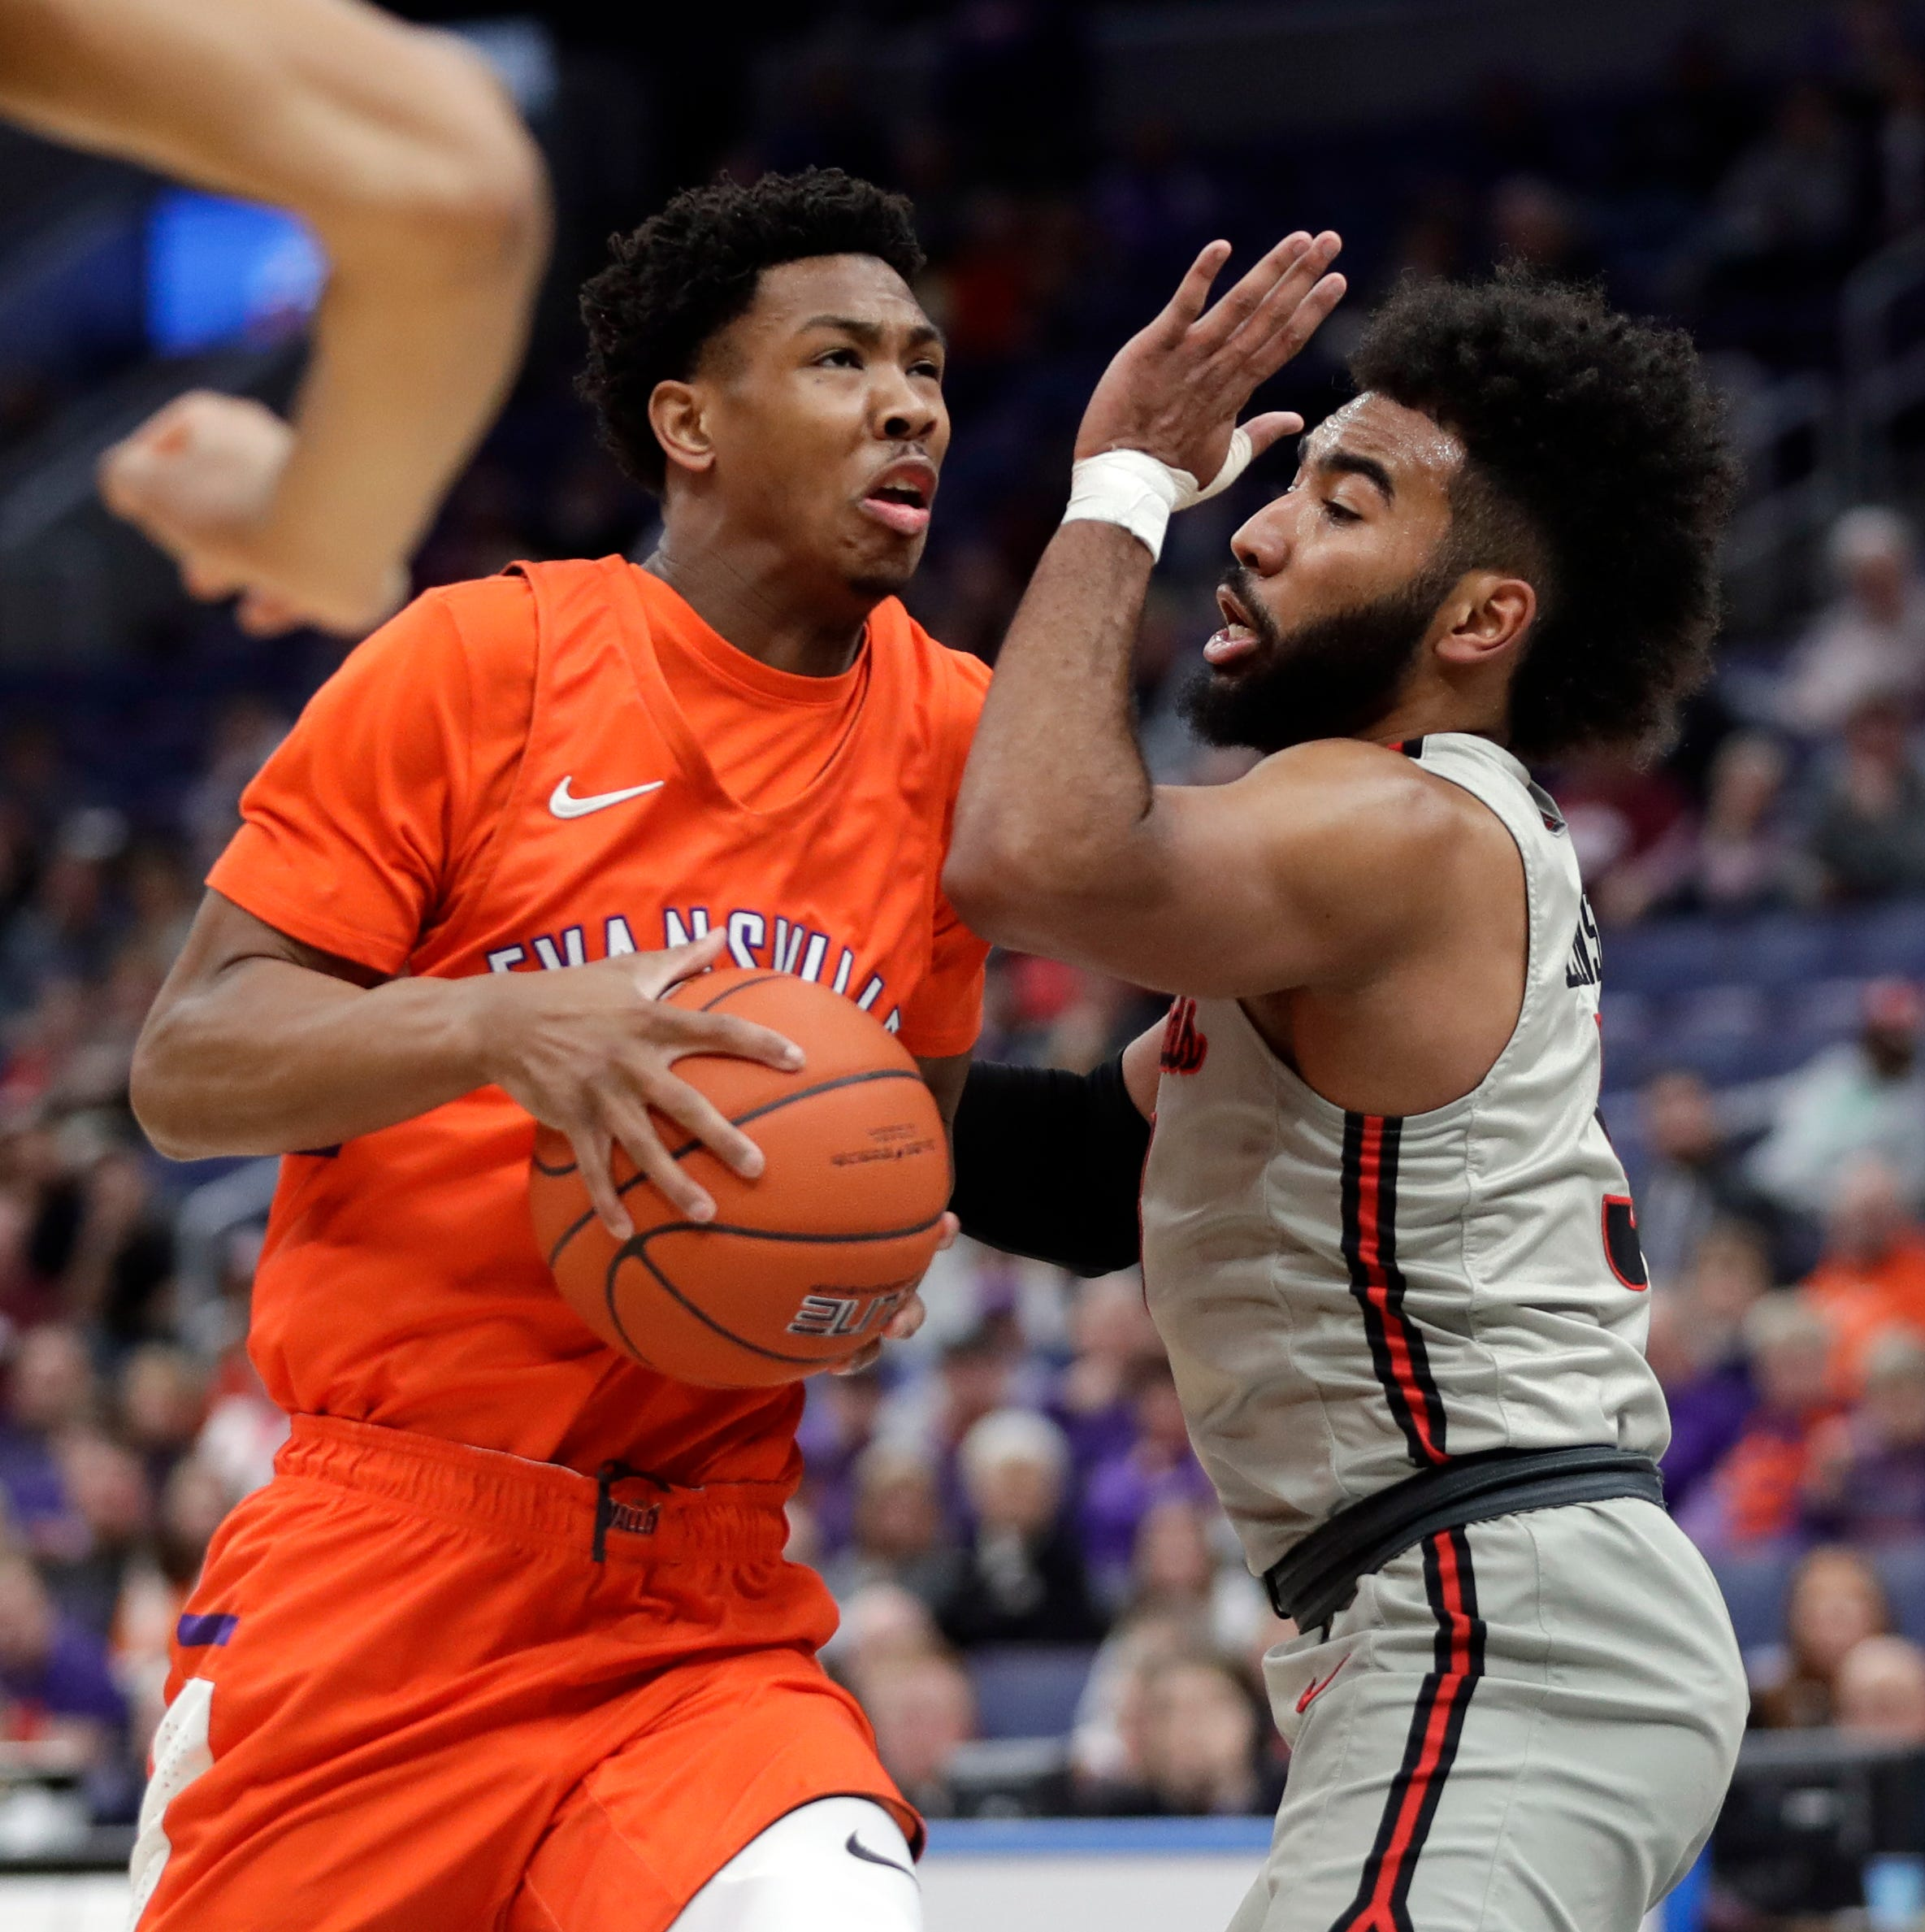 UE basketball season ends with tough loss to Illinois State at Arch Madness